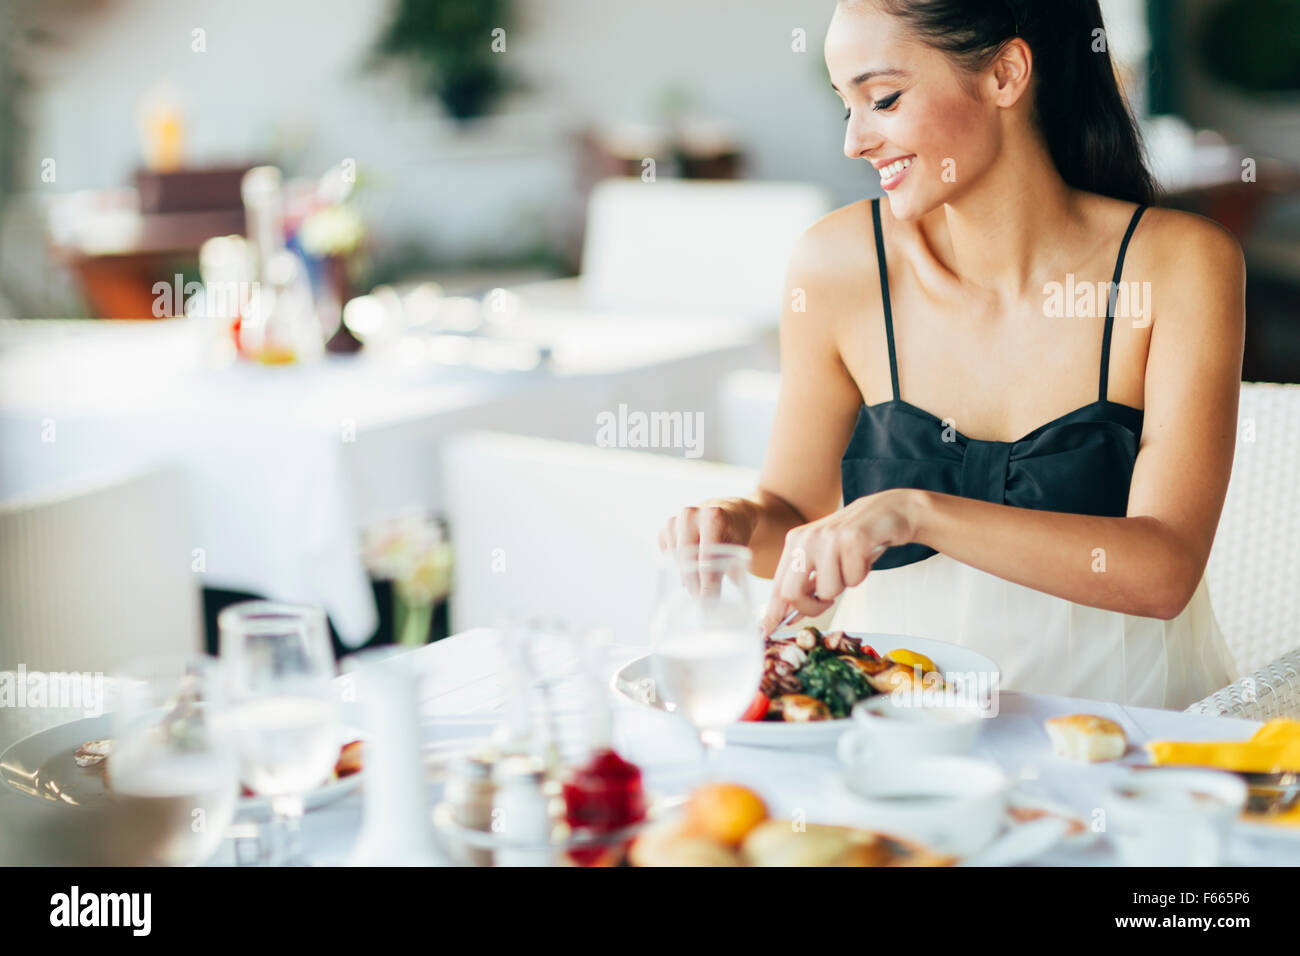 Attractive woman eating in restaurant outdoor - Stock Image